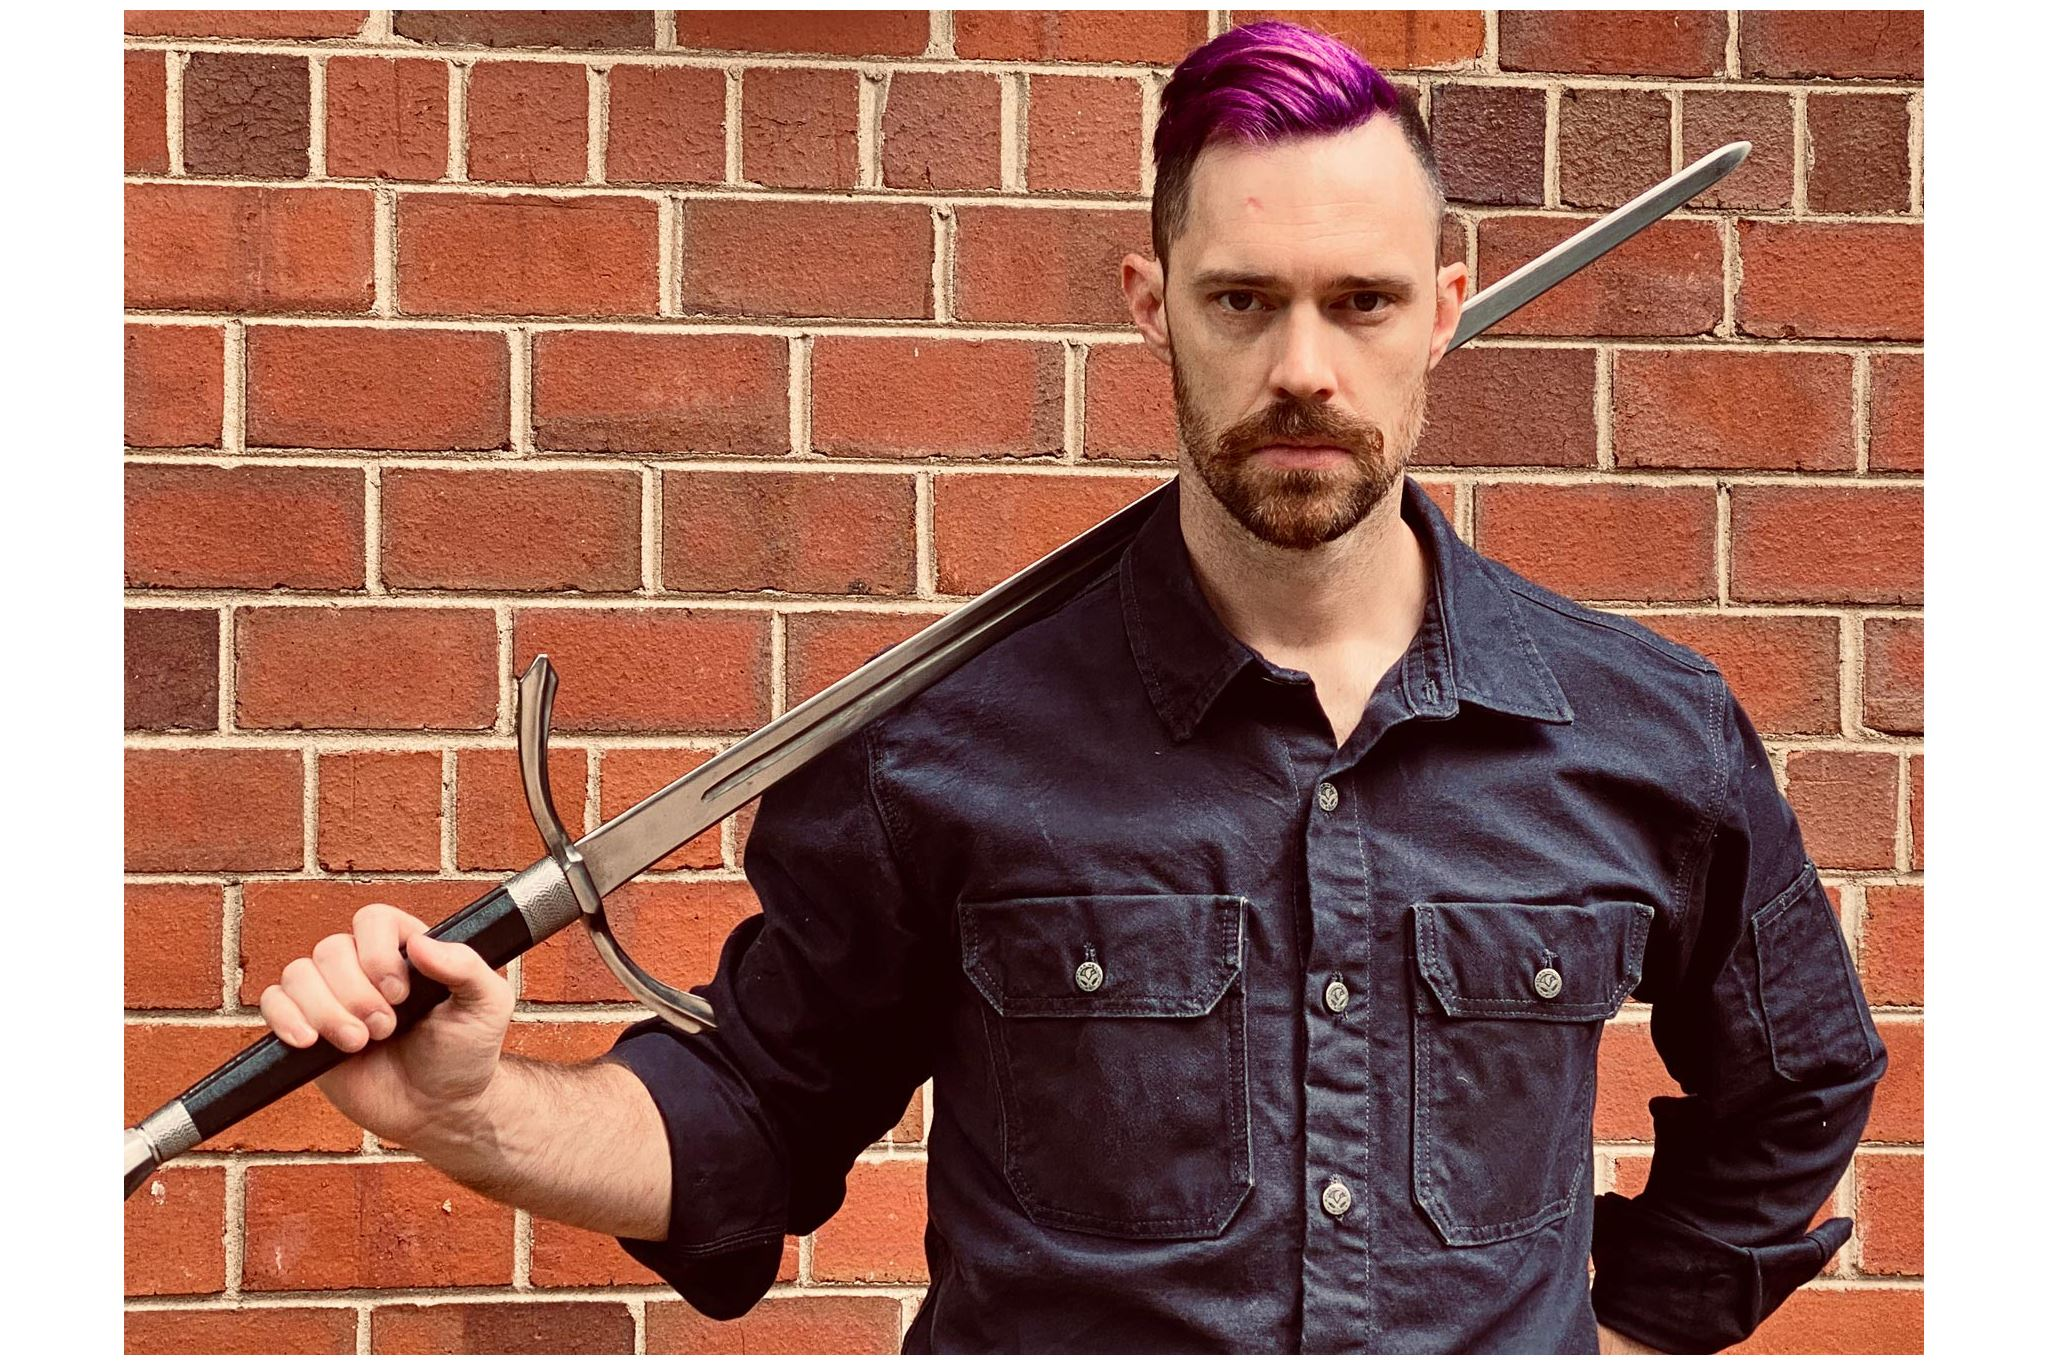 An actor with purple mohawk haircut holding a sword behind his back against a brick wall